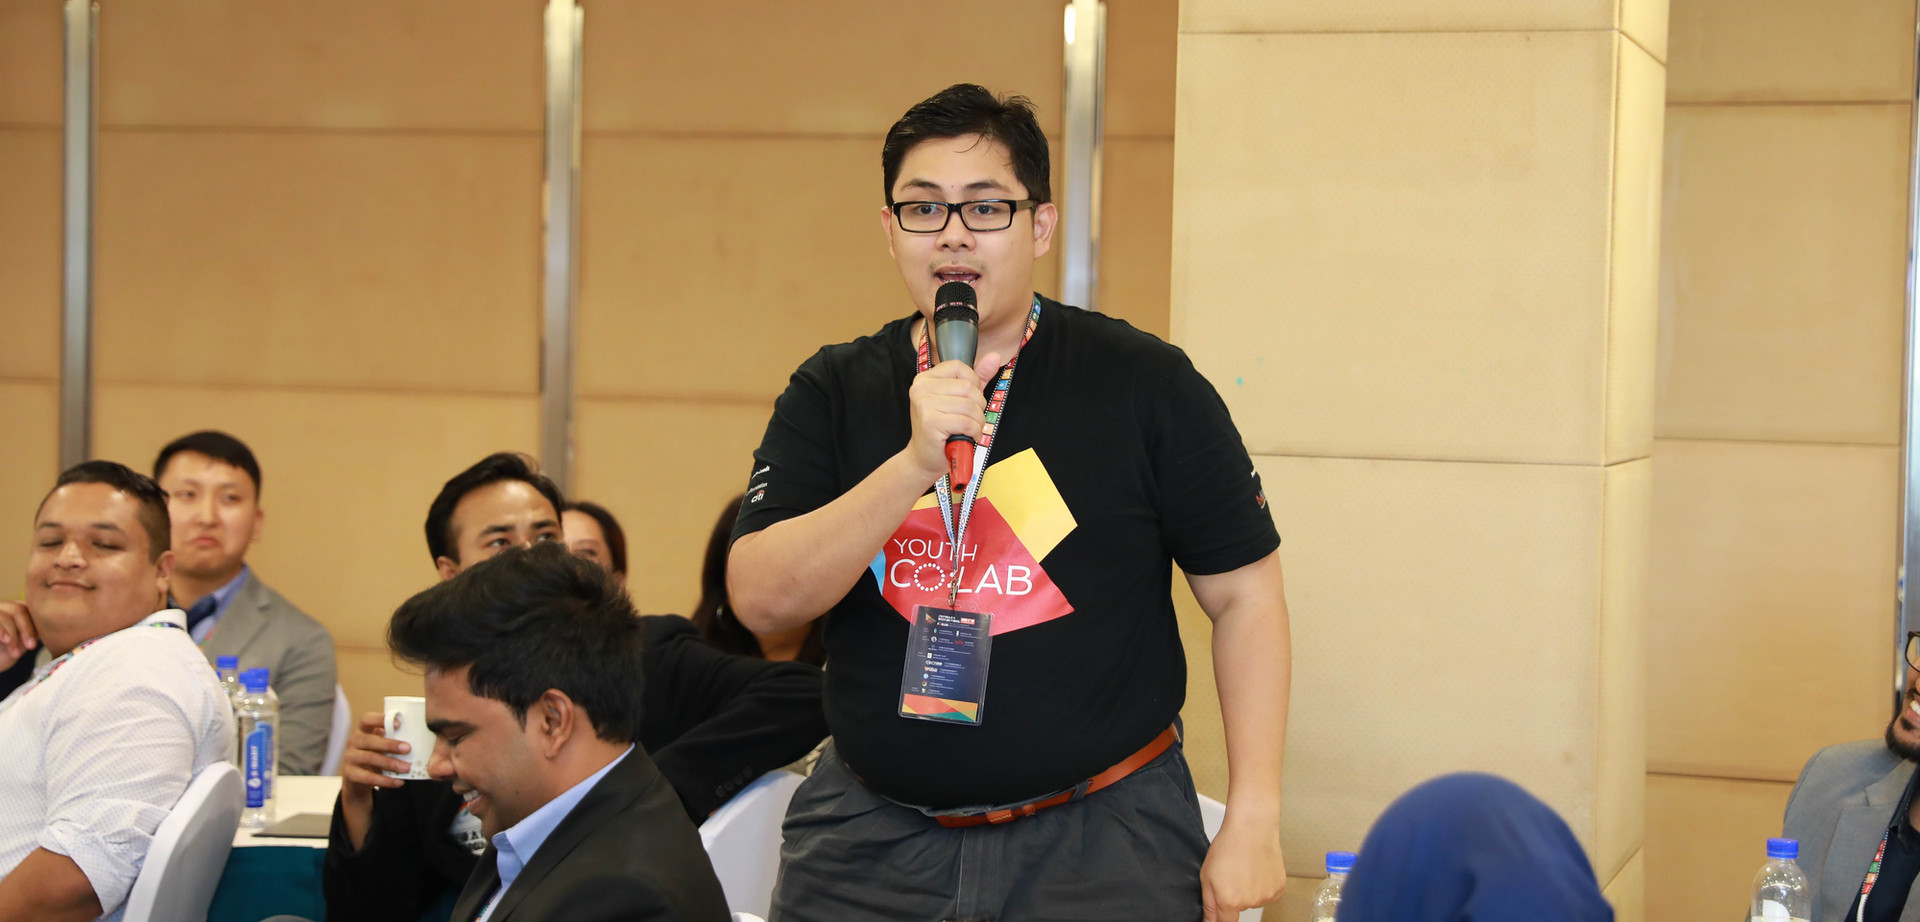 Asia Pacific 2019 Youth Leadership Innovation and Entrepreneurship - Guangzhou, China